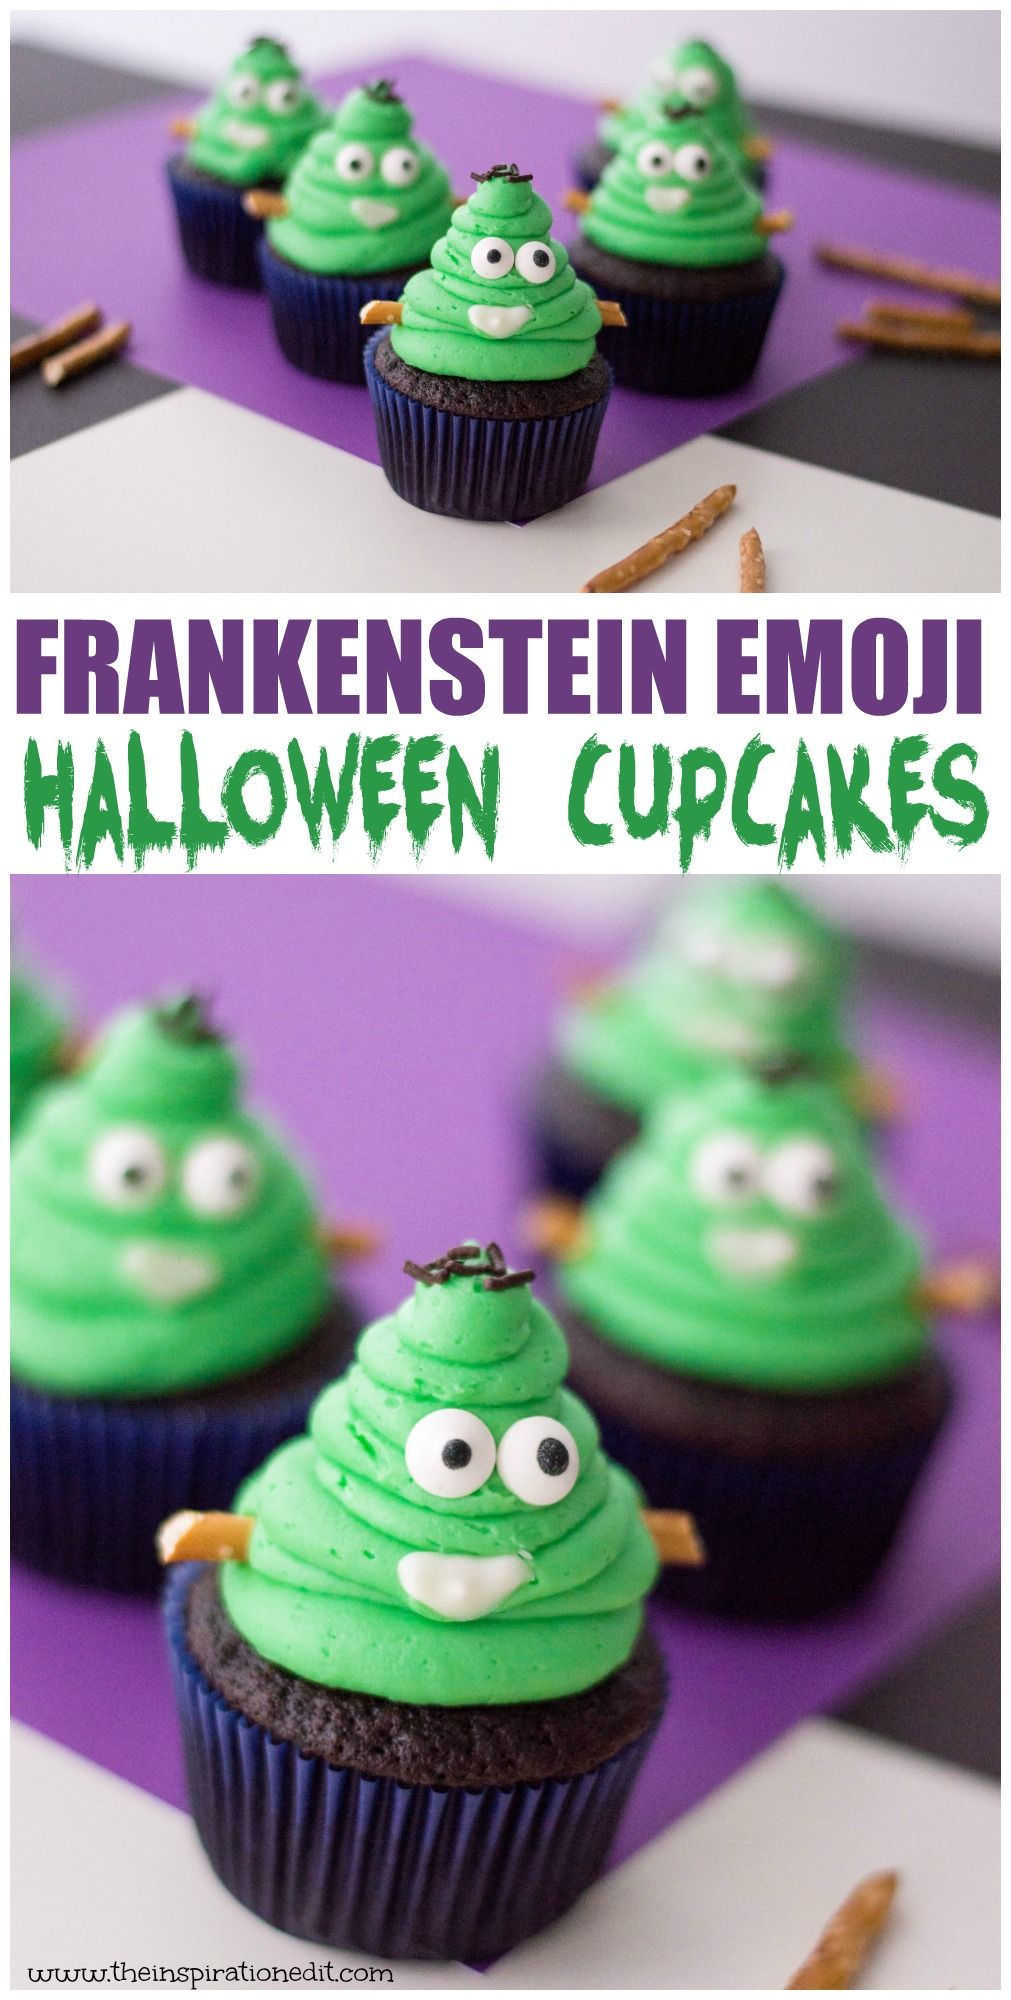 Frankenstein Cupcakes Halloween Treat · The Inspiration Edit